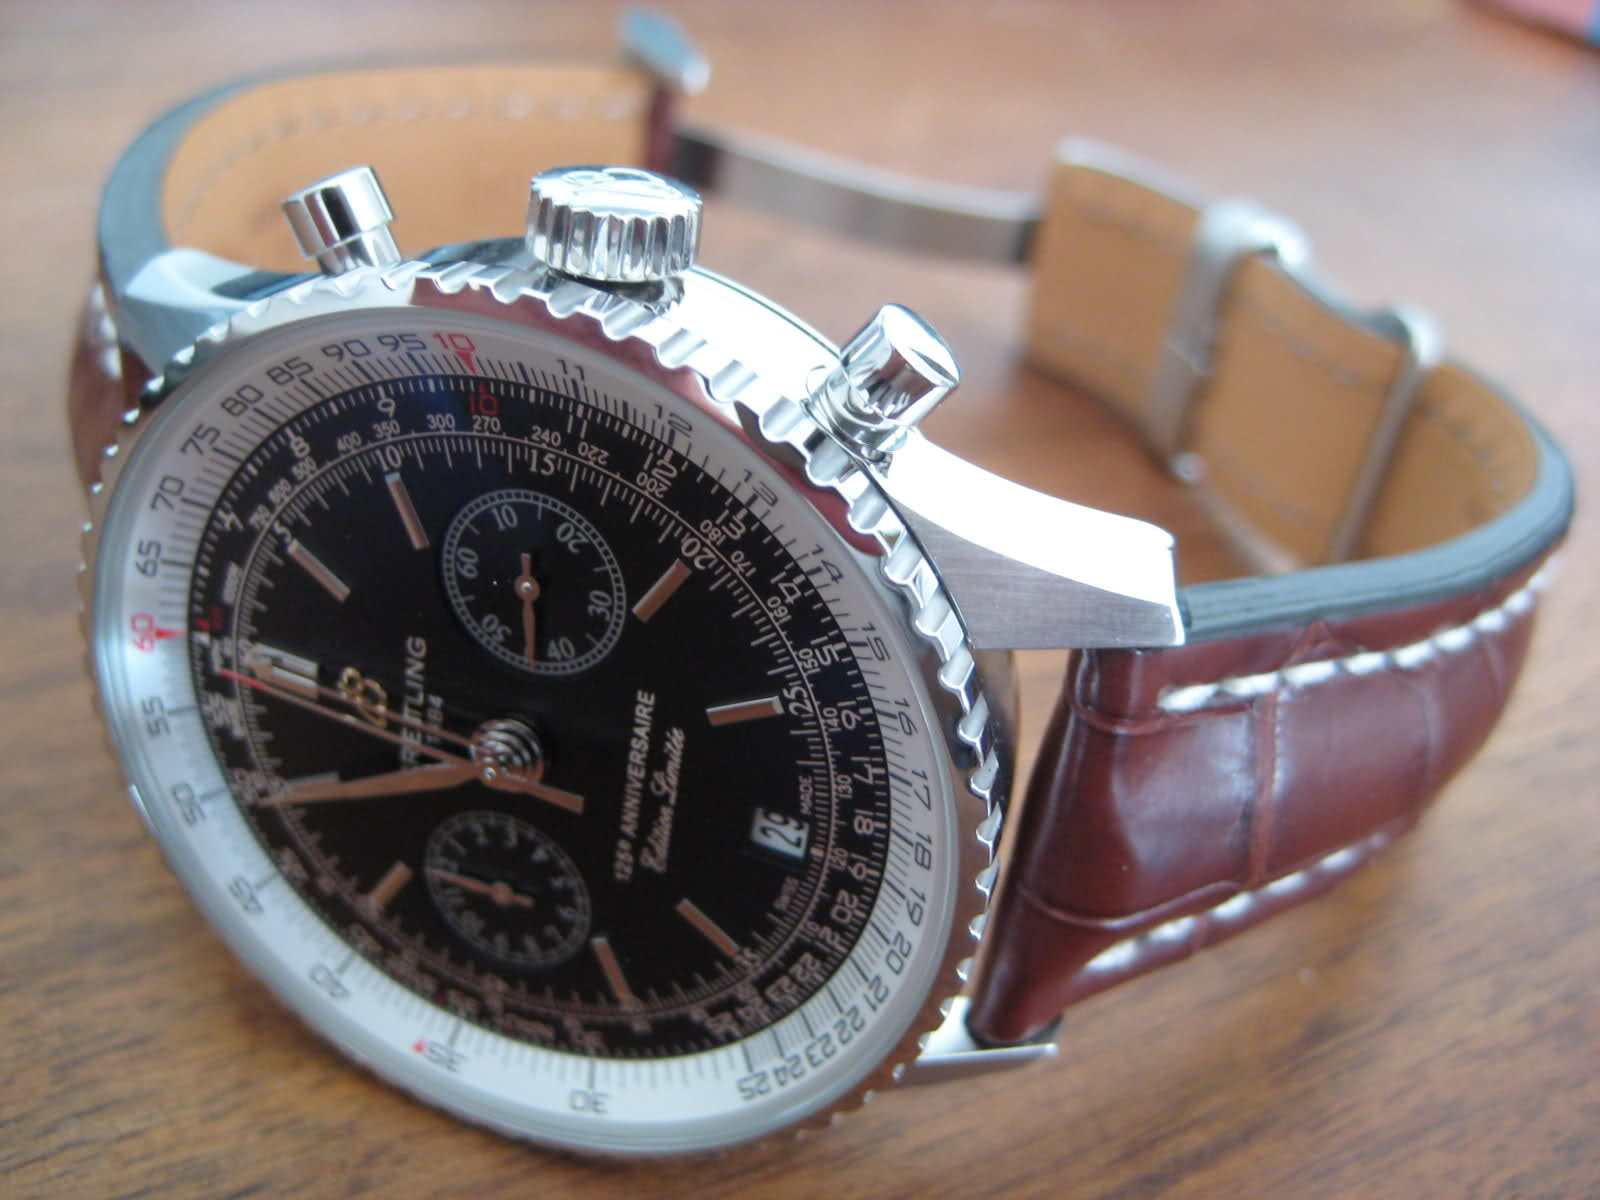 Breitling - IWC Portugaise Vs Breitling Navitimer 125 Anniversary - Page 2 2iw6bs0